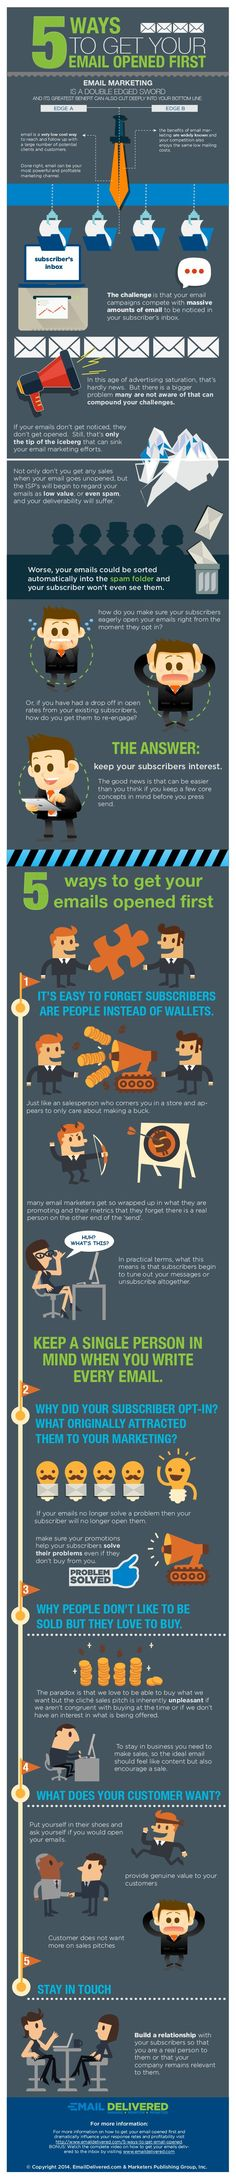 5 ways to get your email opened first #Infografica #infographic, statistiche e spunti di riflessione. #diellegrafica